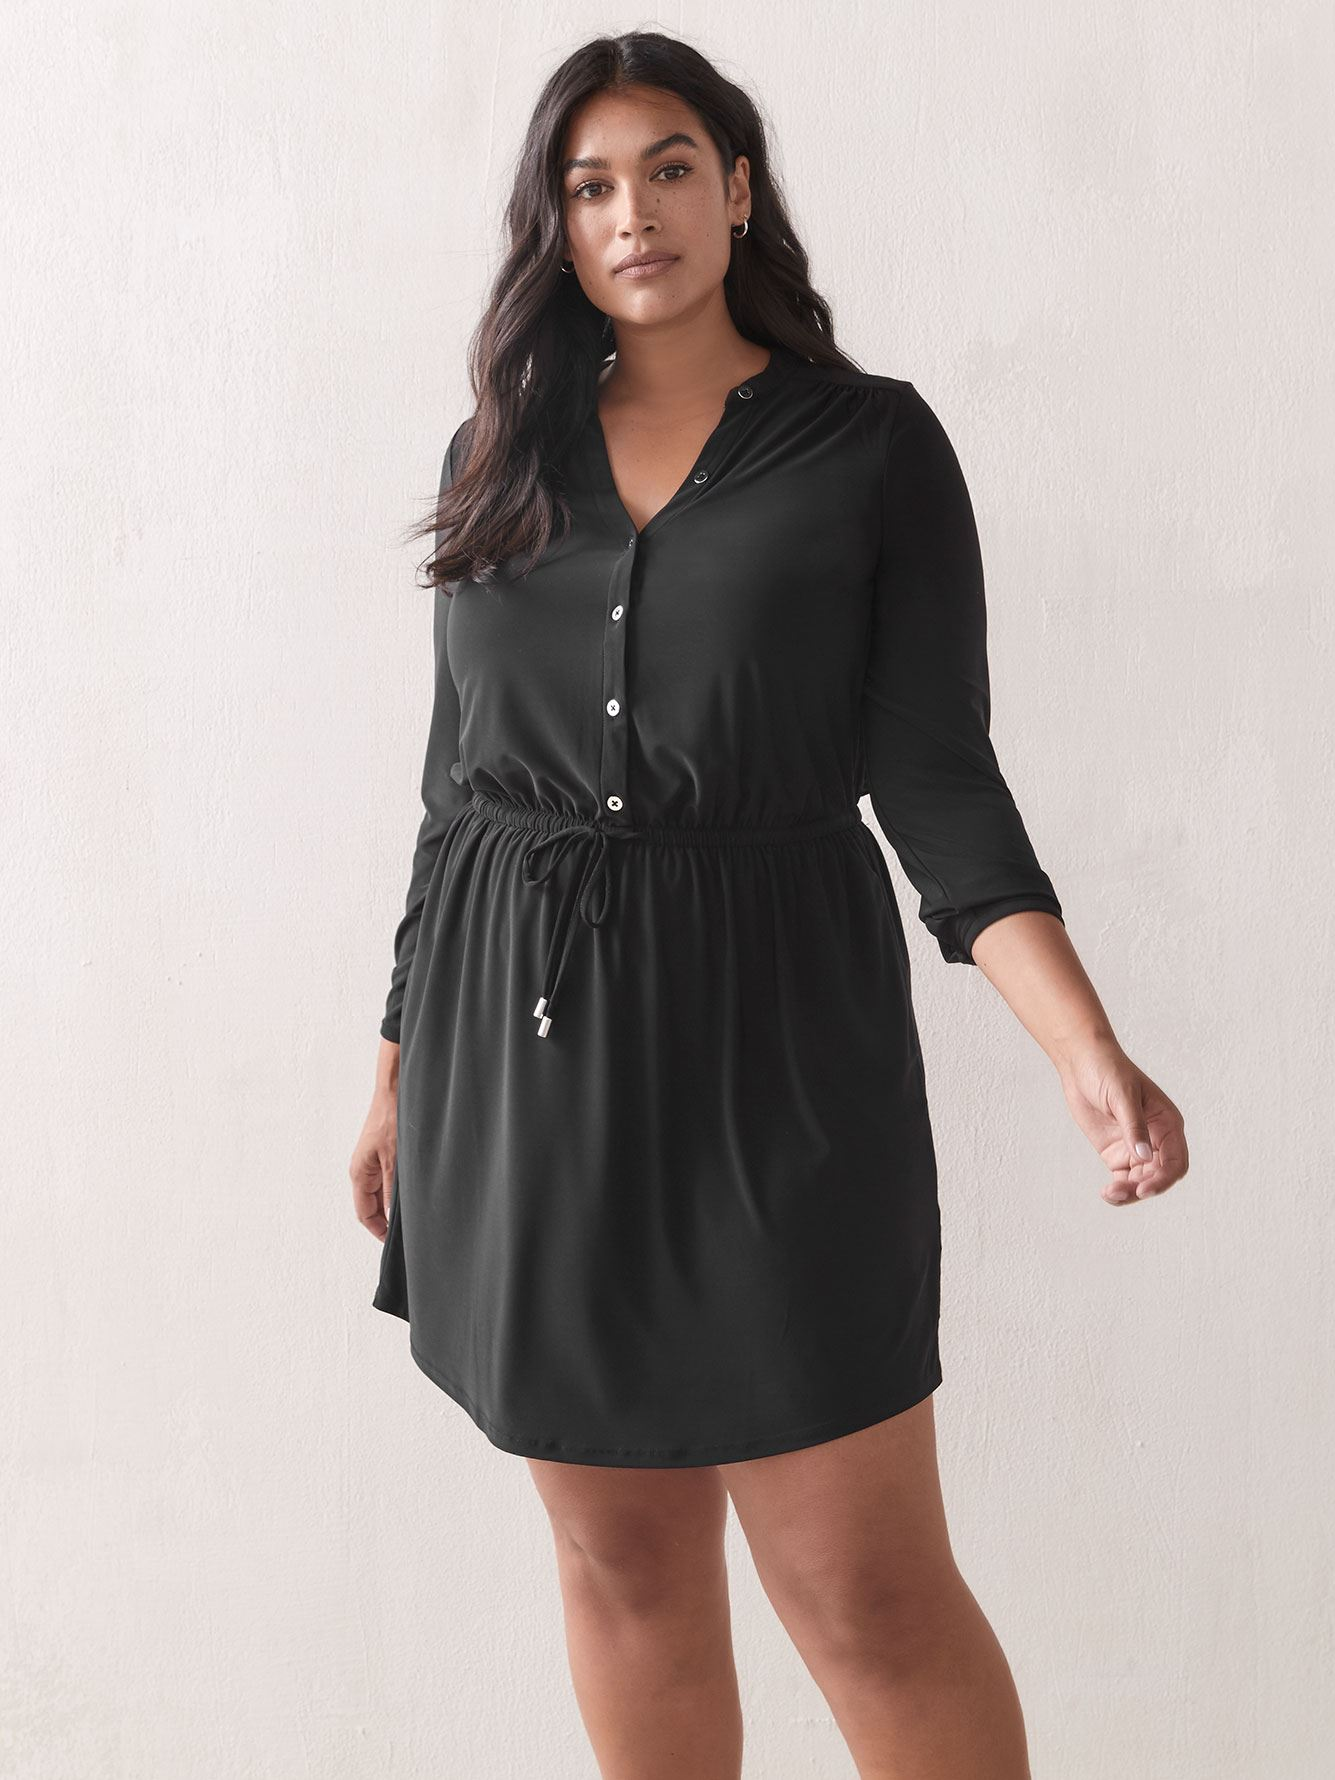 Long-Sleeve Shirt Dress - Addition Elle